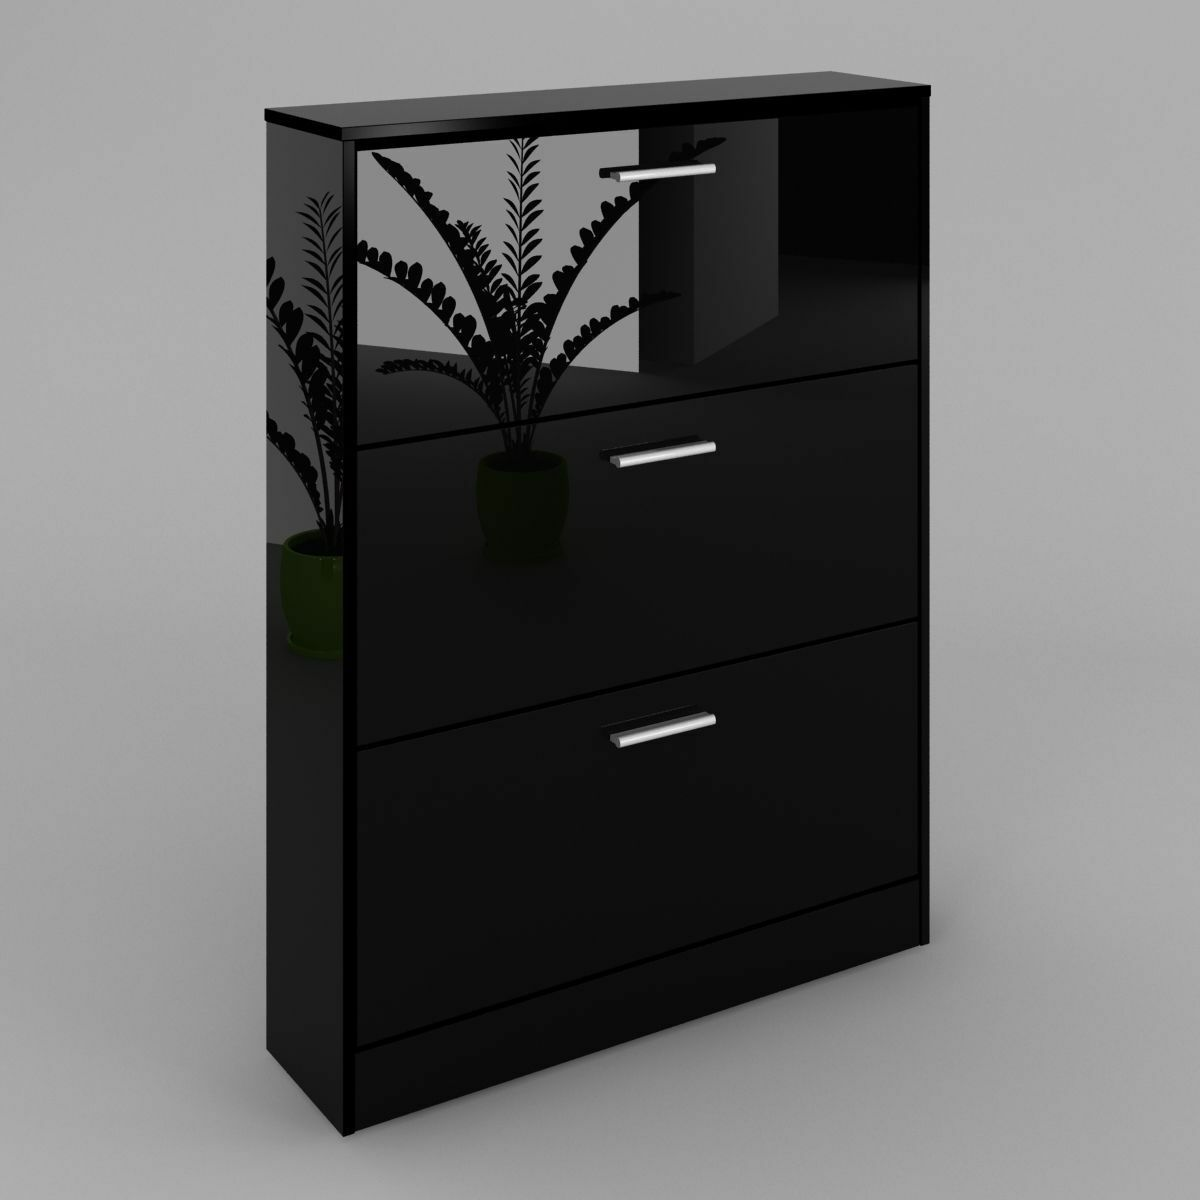 bari meuble chaussures tag re armoire commode 3 tiroirs. Black Bedroom Furniture Sets. Home Design Ideas